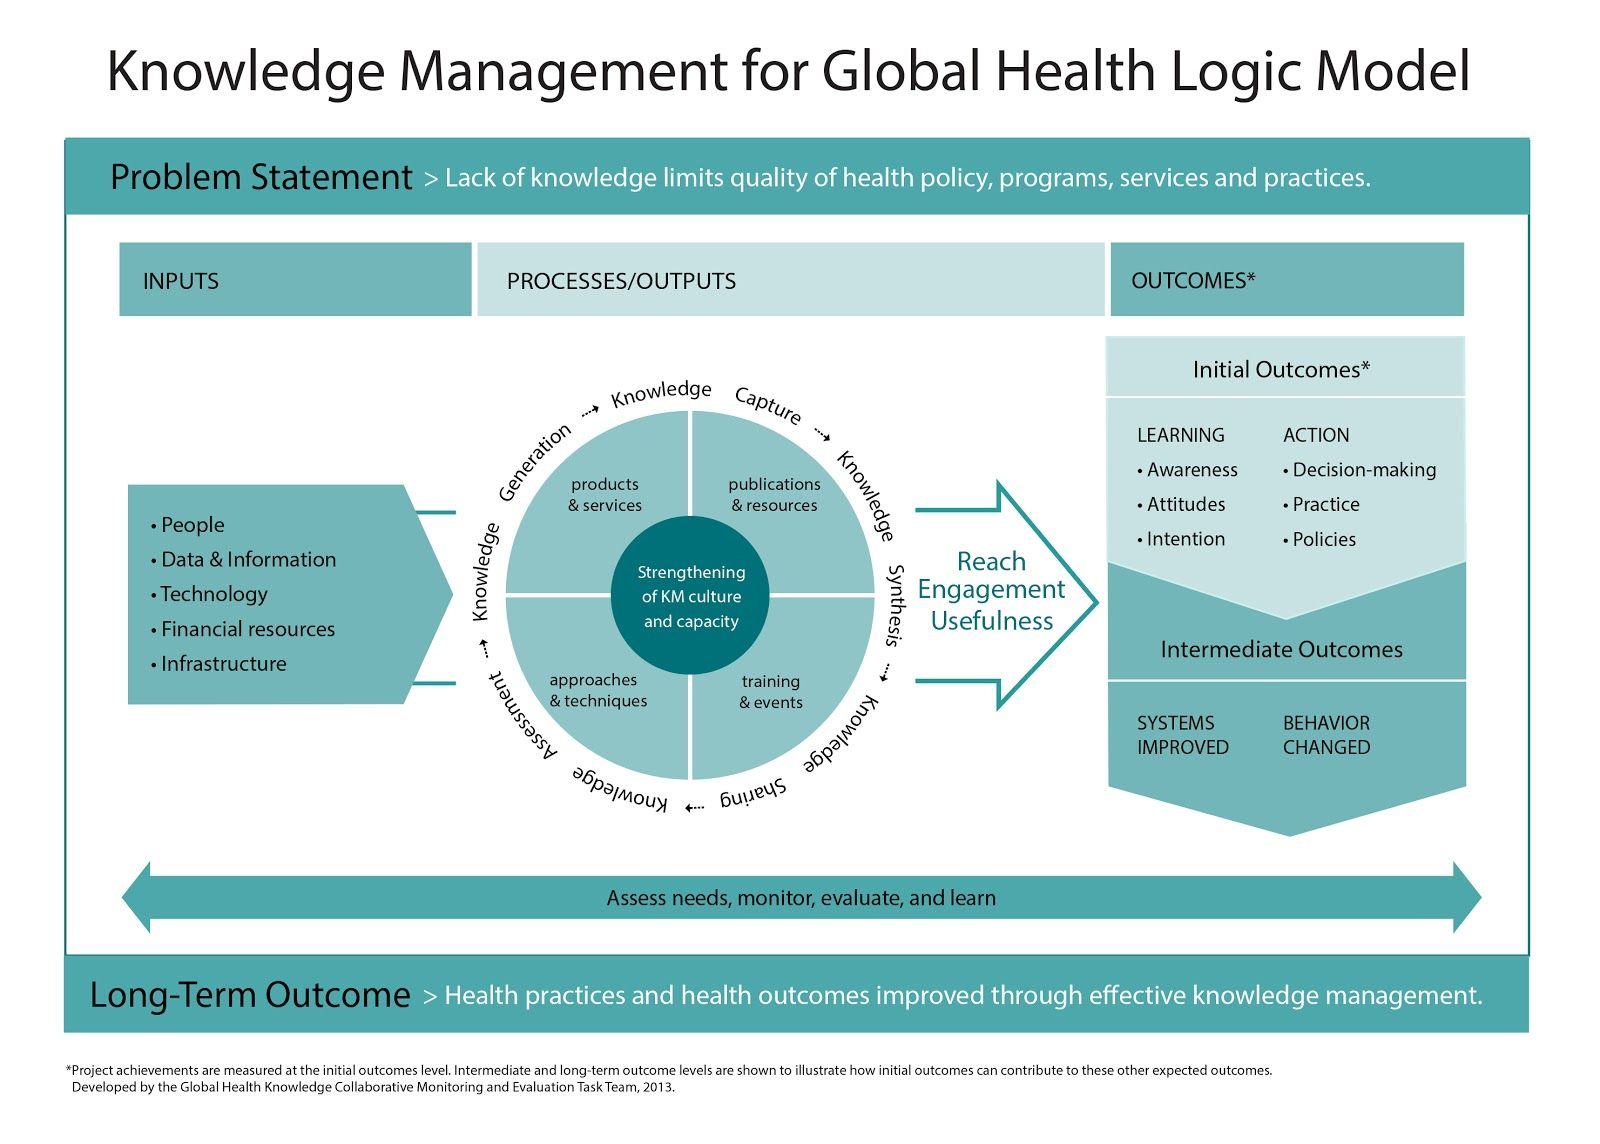 Pin by Do Thanh on Business Plan Knowledge management